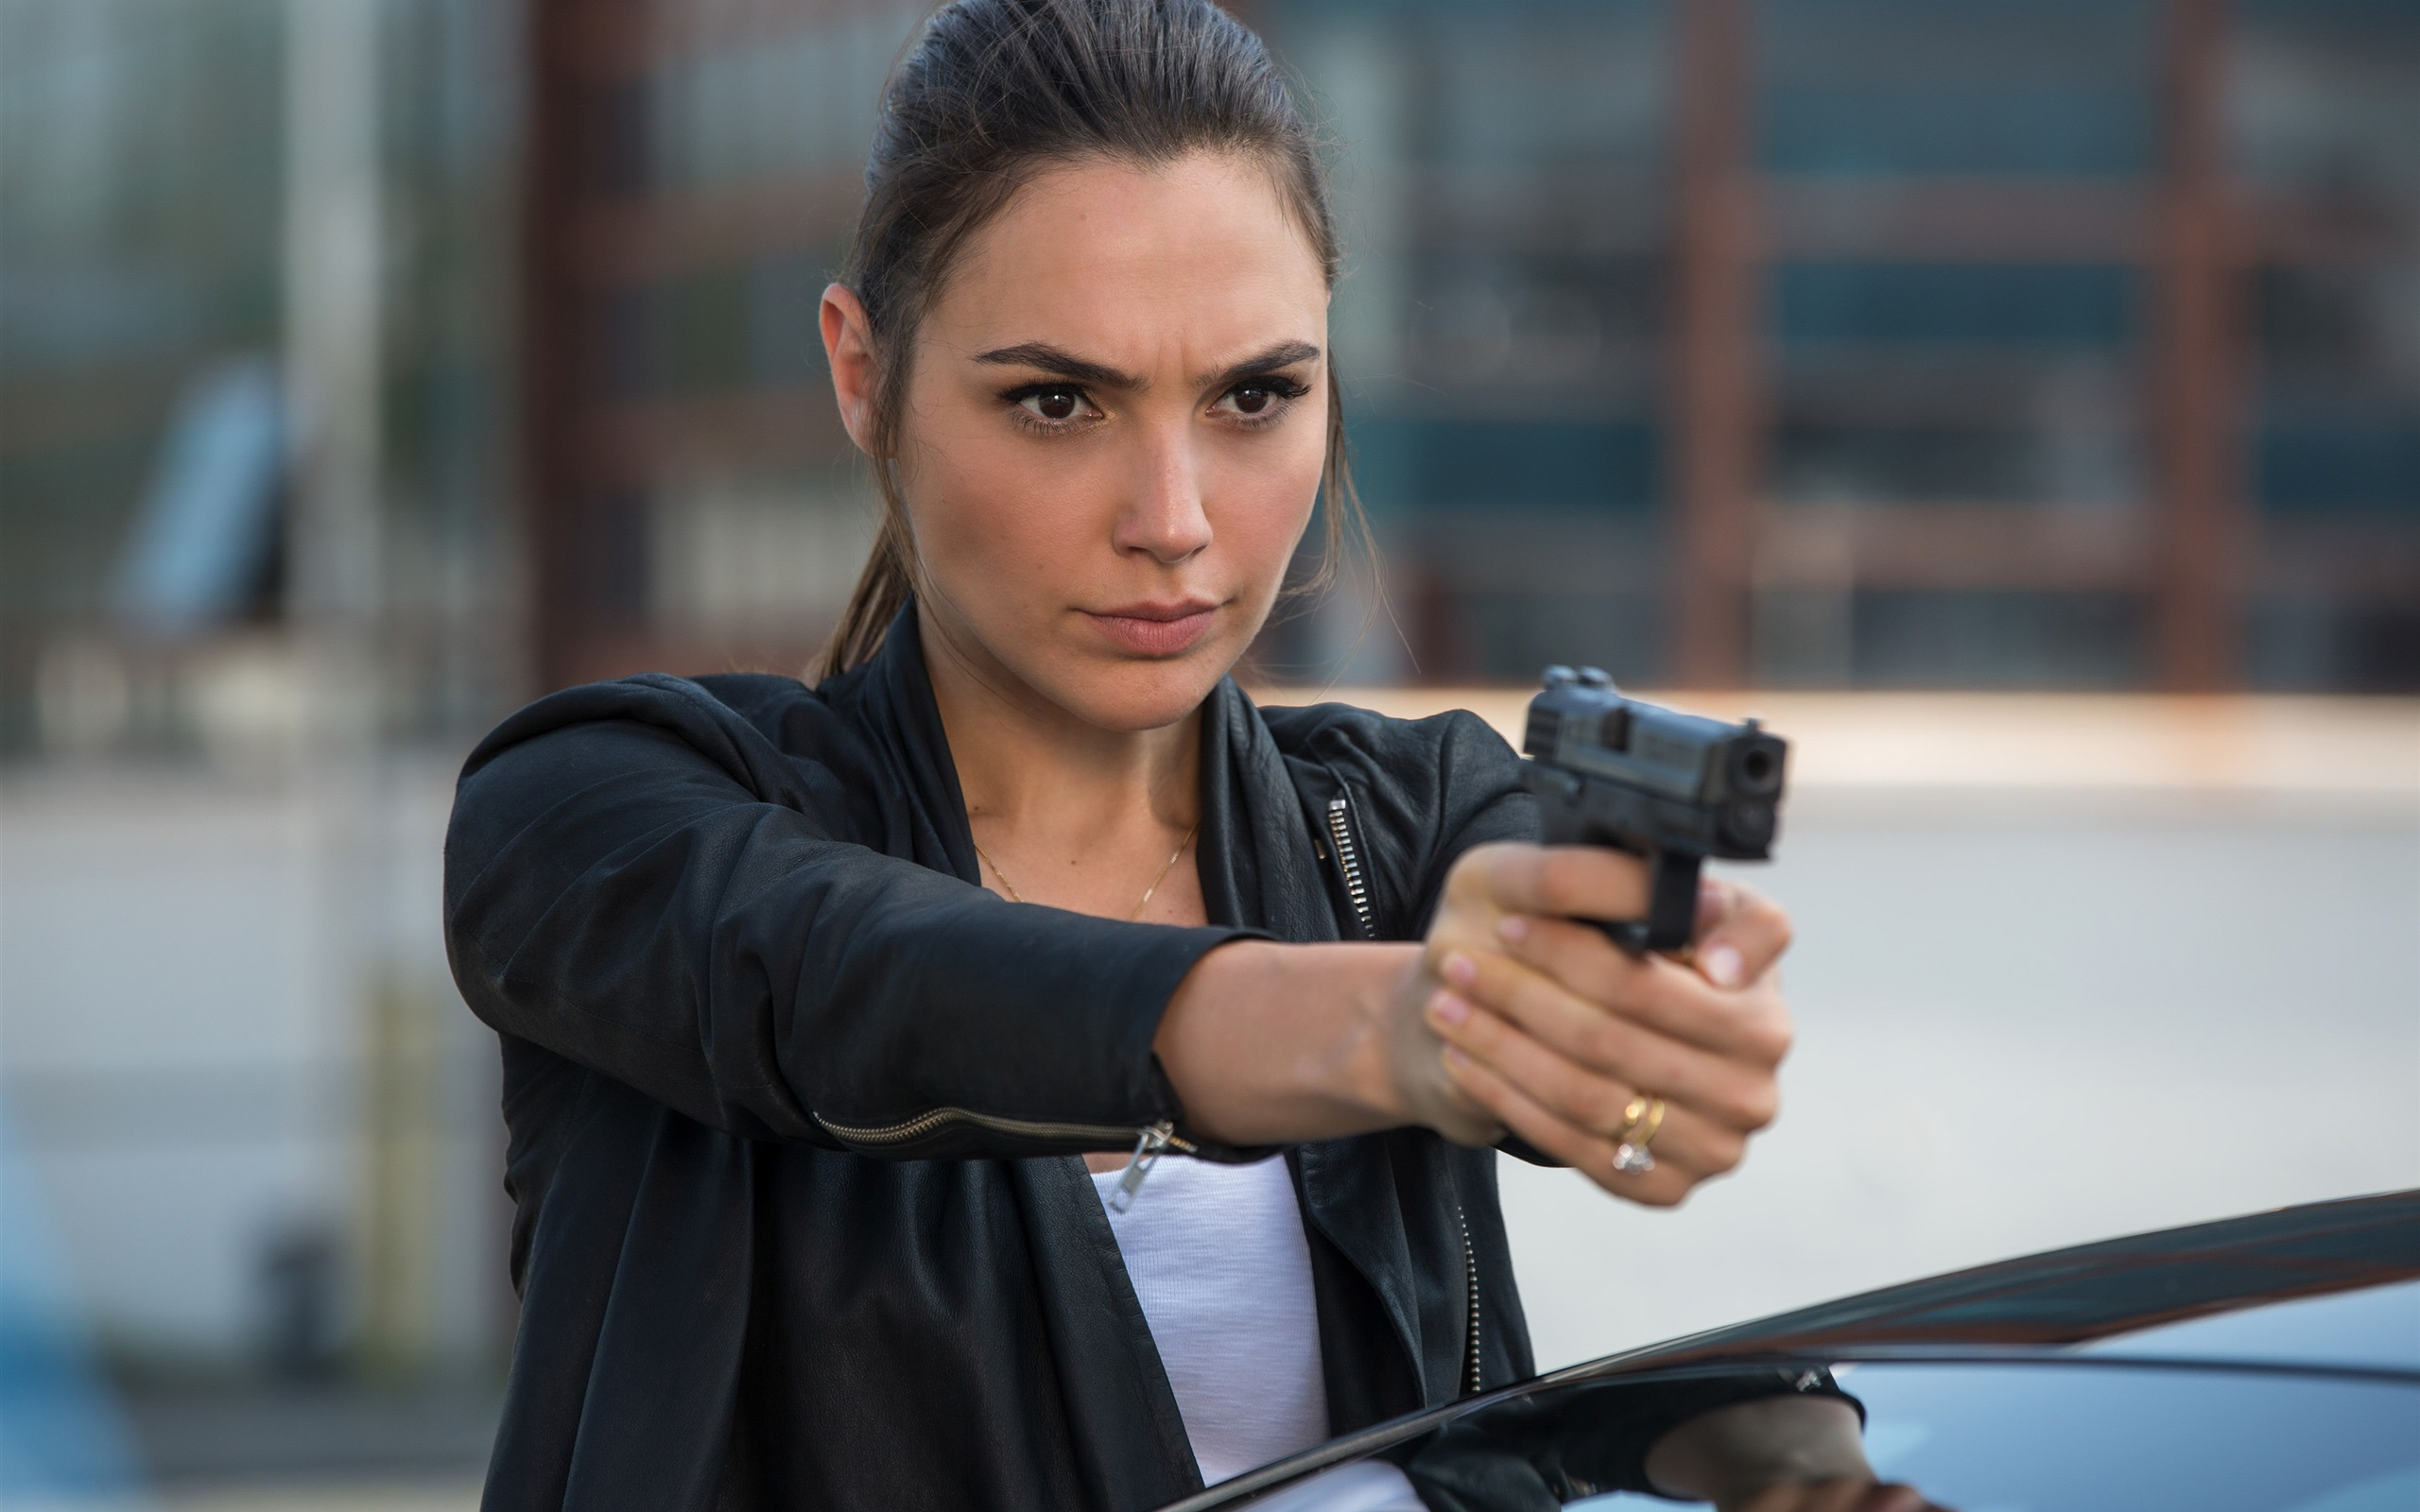 Keeping Up With The Joneses Download: Download Wallpaper 2560x1600 Gal Gadot, Keeping Up With